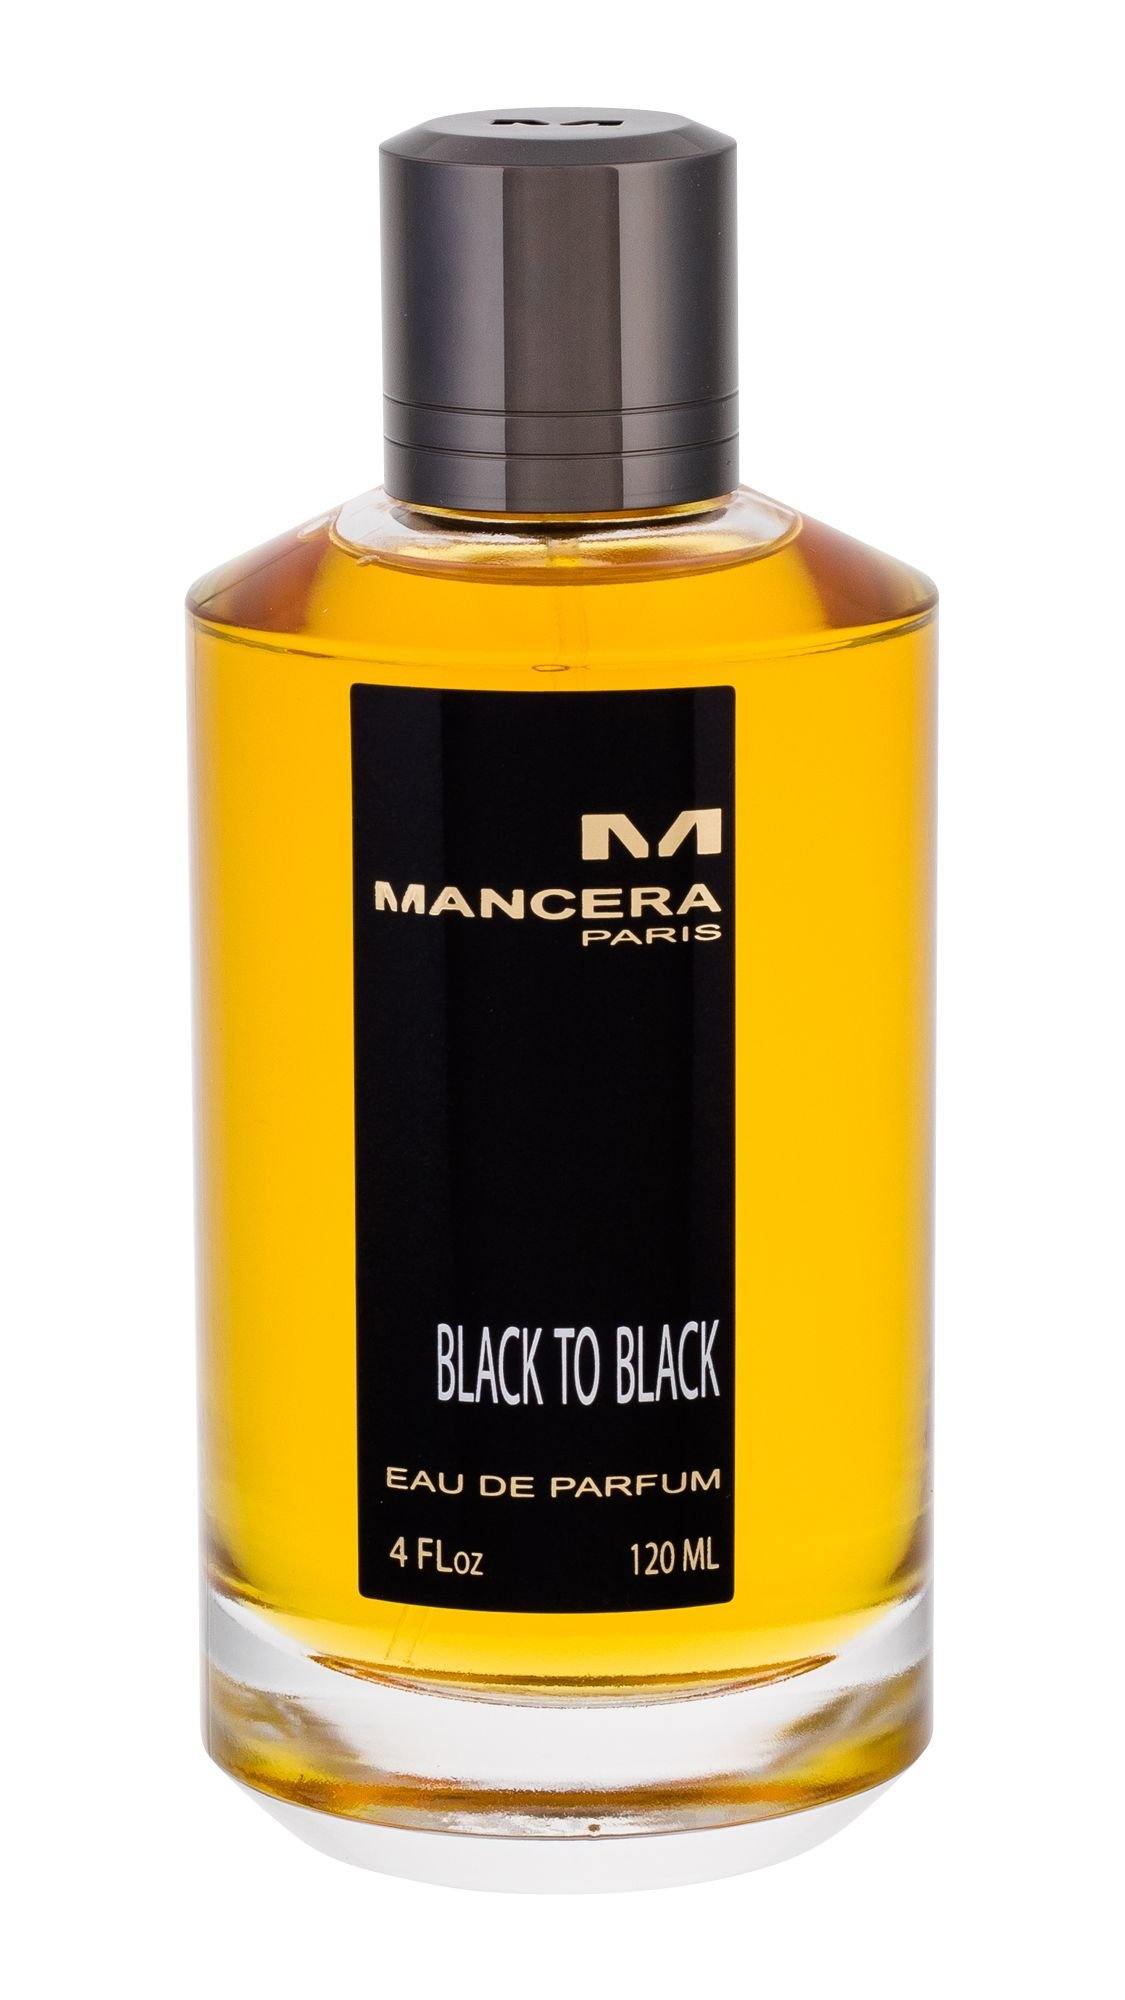 MANCERA Black to Black Eau de Parfum 120ml